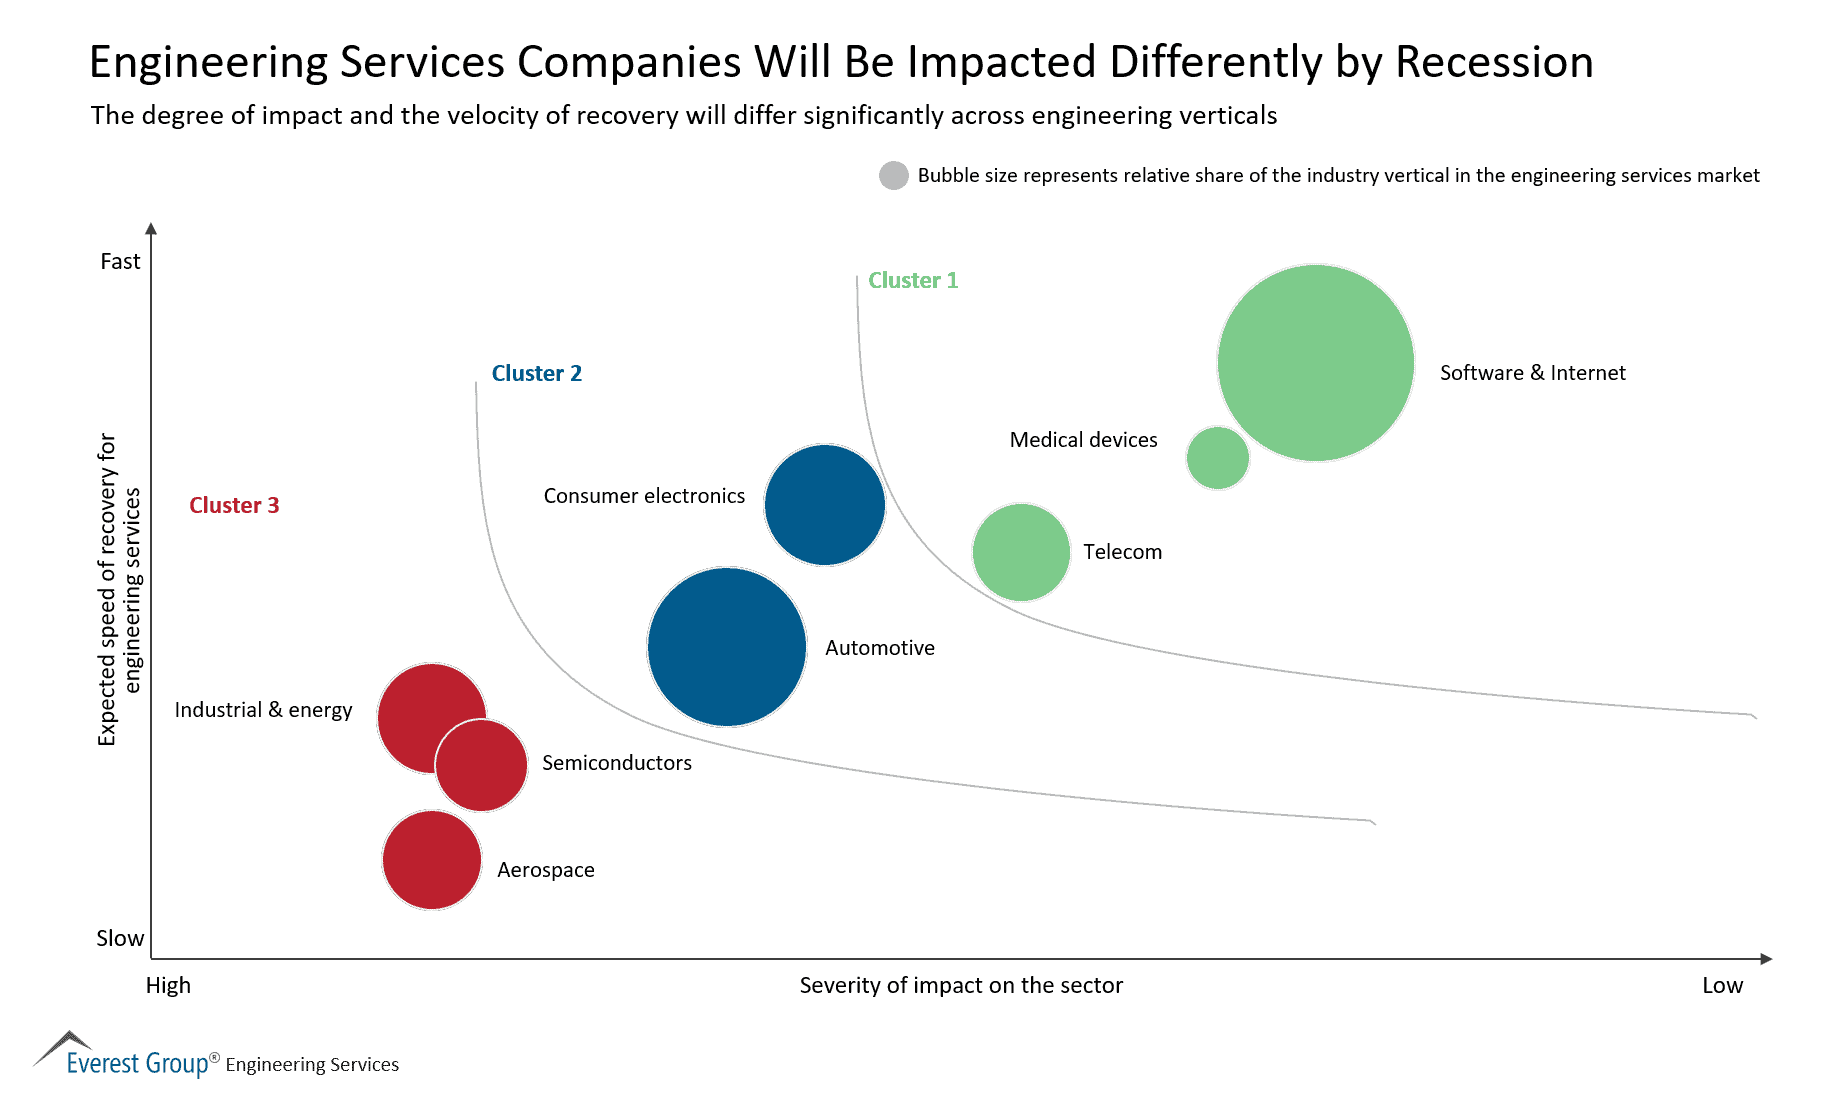 Engineering Services Companies Will Be Impacted Differently by Recession